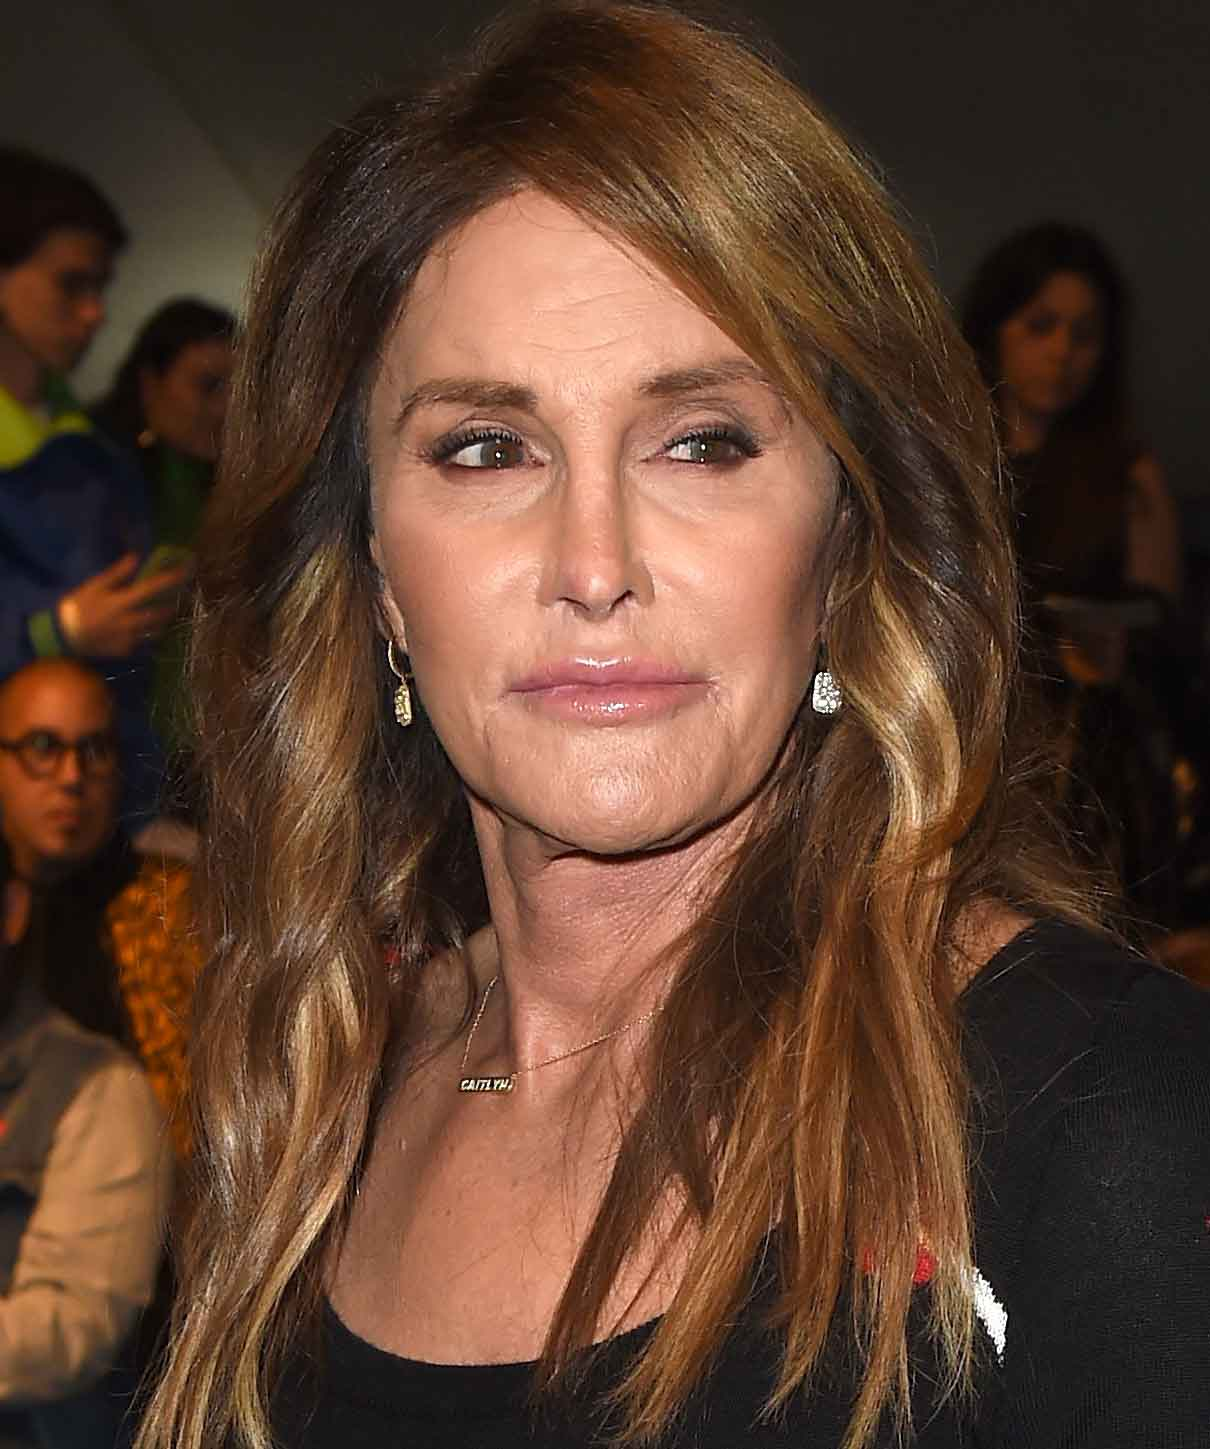 Caitlyn Jenner opens up about Kris and gender